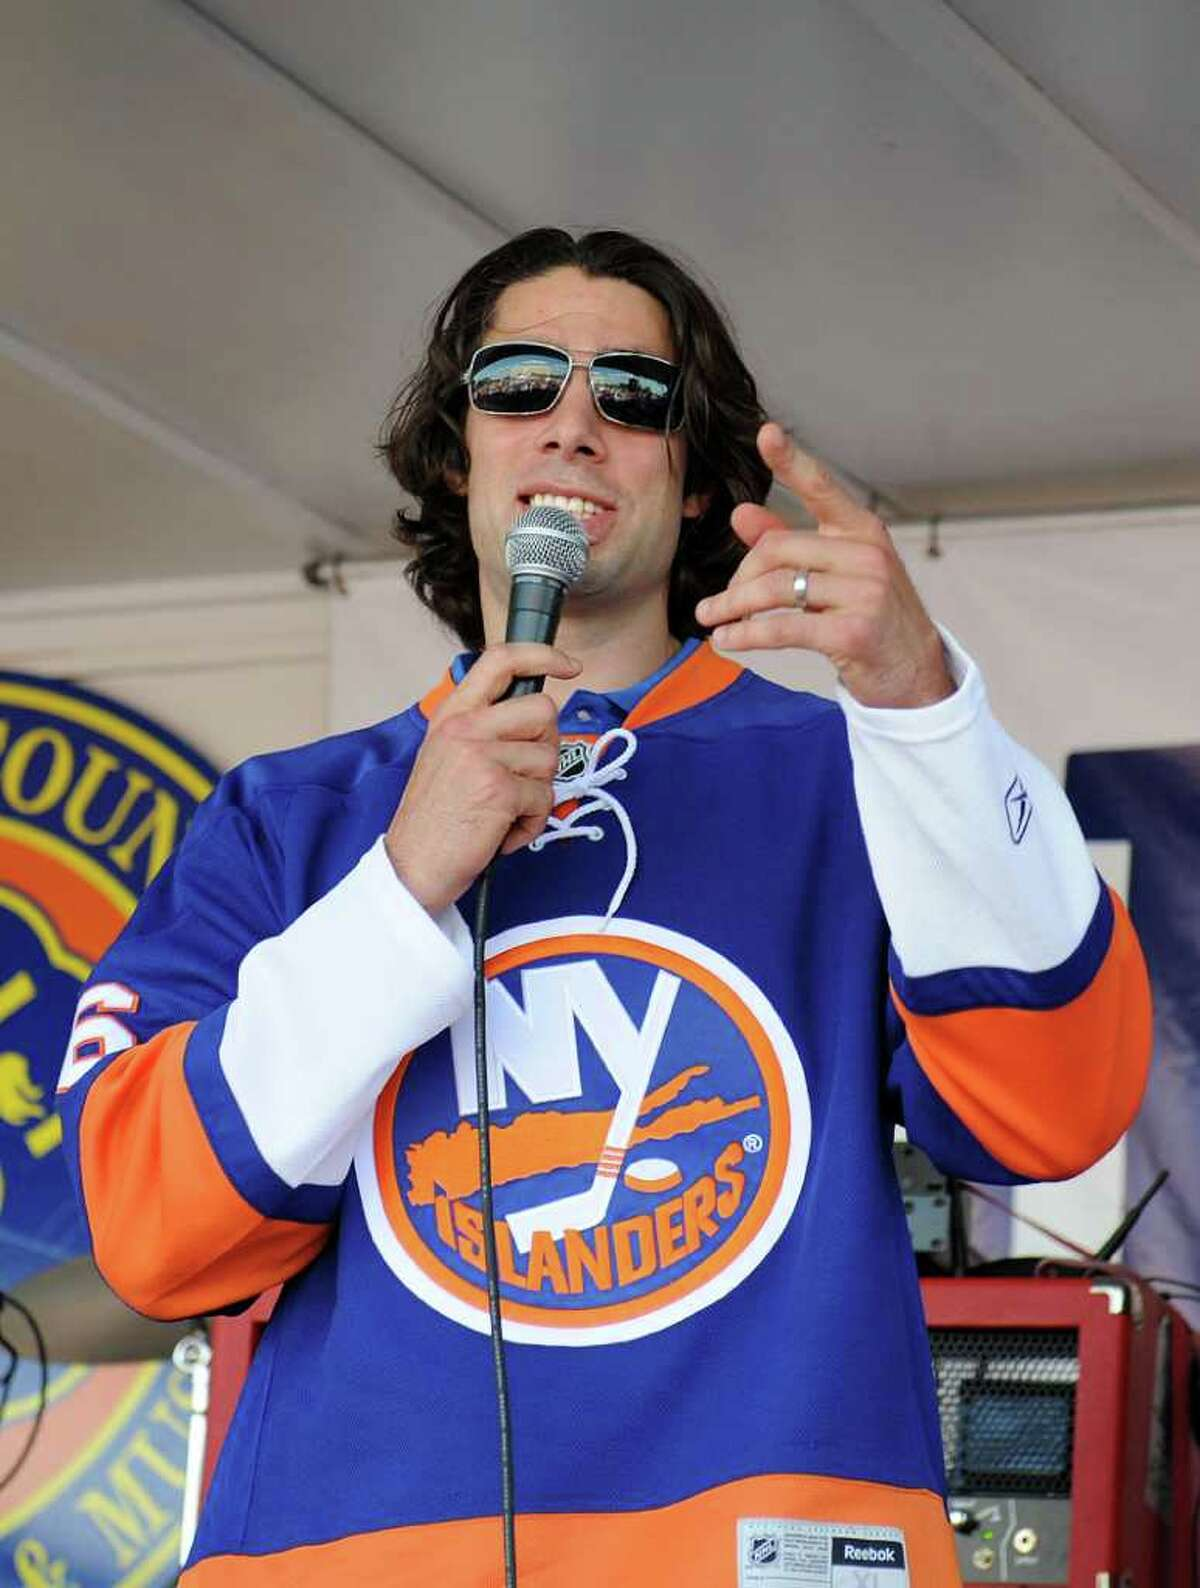 UNIONDALE, NY - JULY 27: Matt Moulson #36 of the New York Islanders speaks during the fan rally at Nassau Coliseum on July 27, 2011 in Uniondale, New York. (Photo by Christopher Pasatieri/Getty Images)